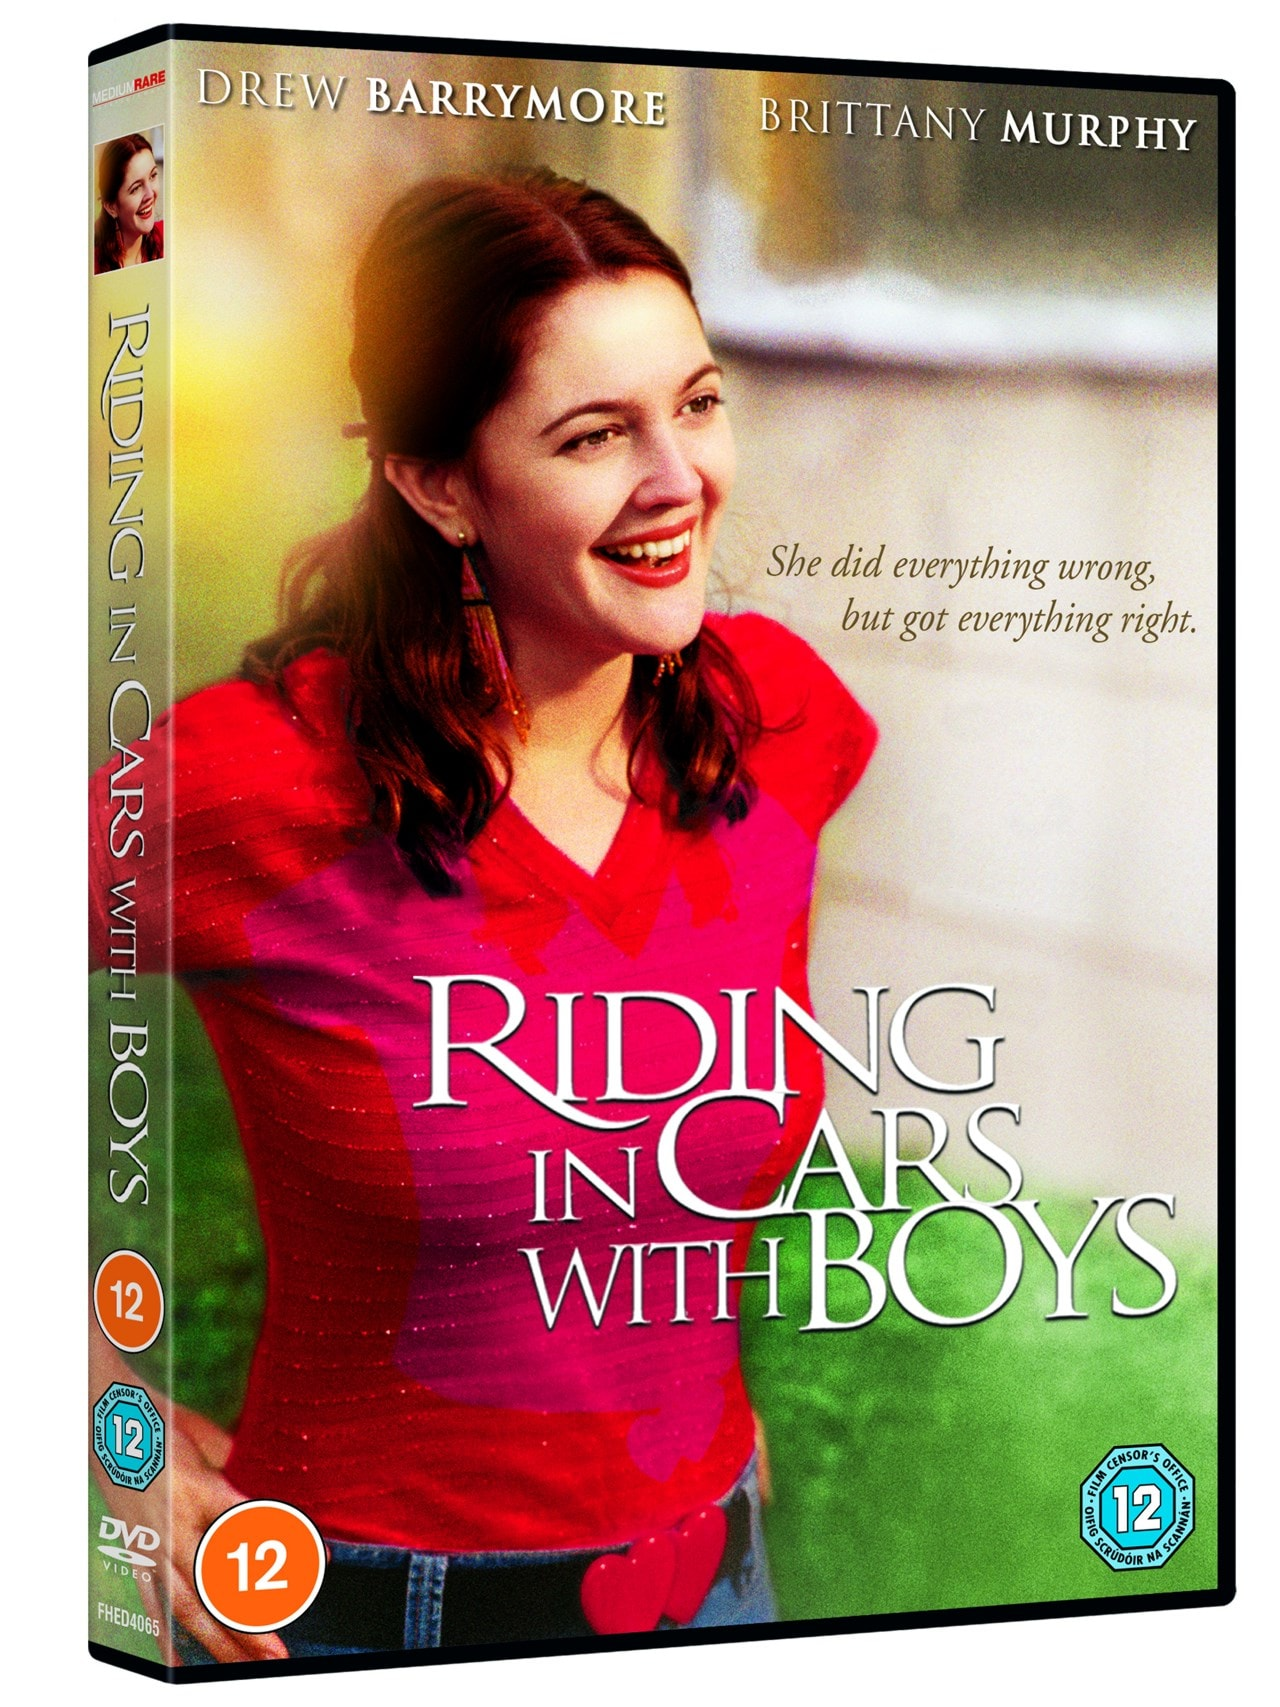 Riding in Cars With Boys - 2